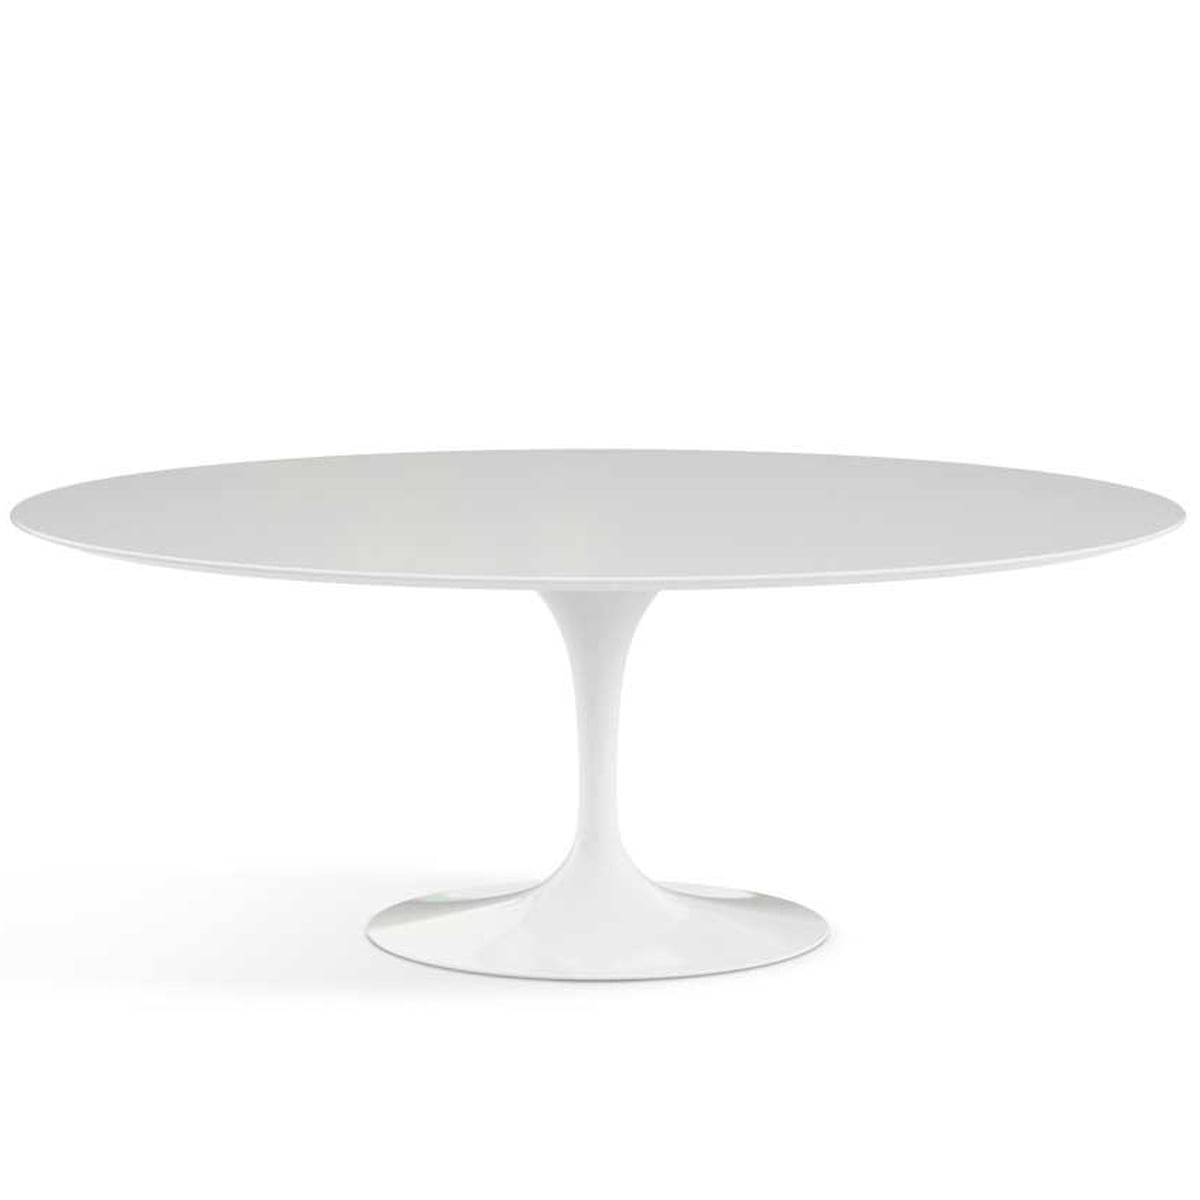 Table saarinen tulip de knoll - Saarinen table ovale ...